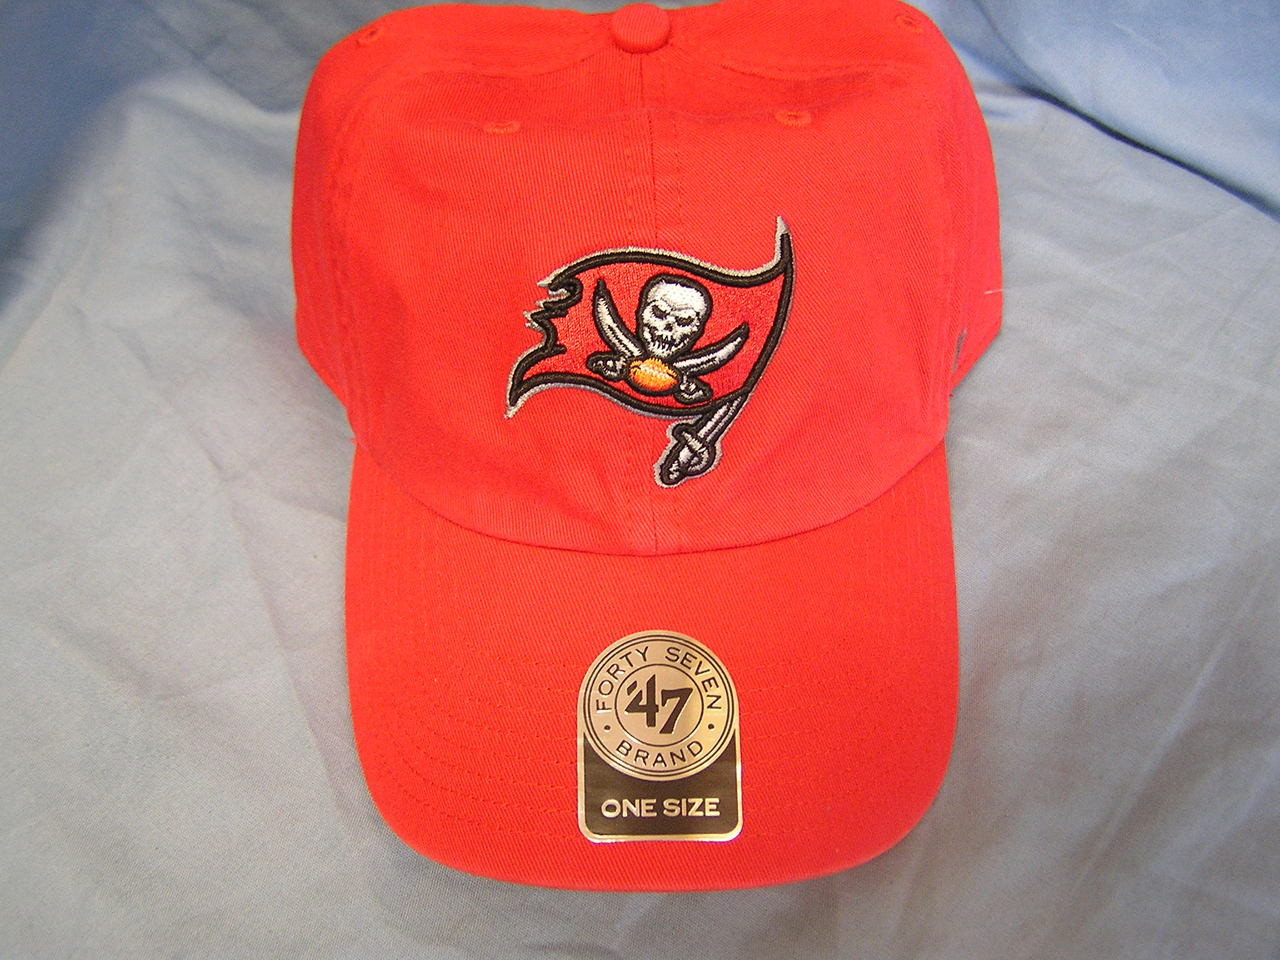 47 brand tampa bay buccaneers nfl clean up strapback hat red one size play moore hockey pro shop 47 brand tampa bay buccaneers nfl clean up strapback hat red one size